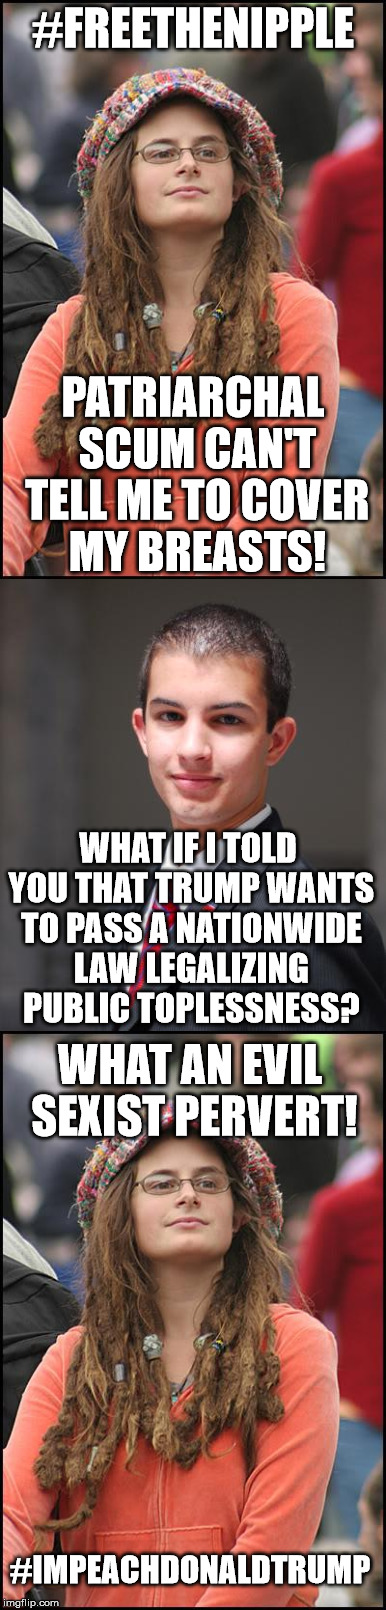 #FREETHENIPPLE PATRIARCHAL SCUM CAN'T TELL ME TO COVER MY BREASTS! WHAT IF I TOLD YOU THAT TRUMP WANTS TO PASS A NATIONWIDE LAW LEGALIZING P | image tagged in college liberal,college conservative | made w/ Imgflip meme maker